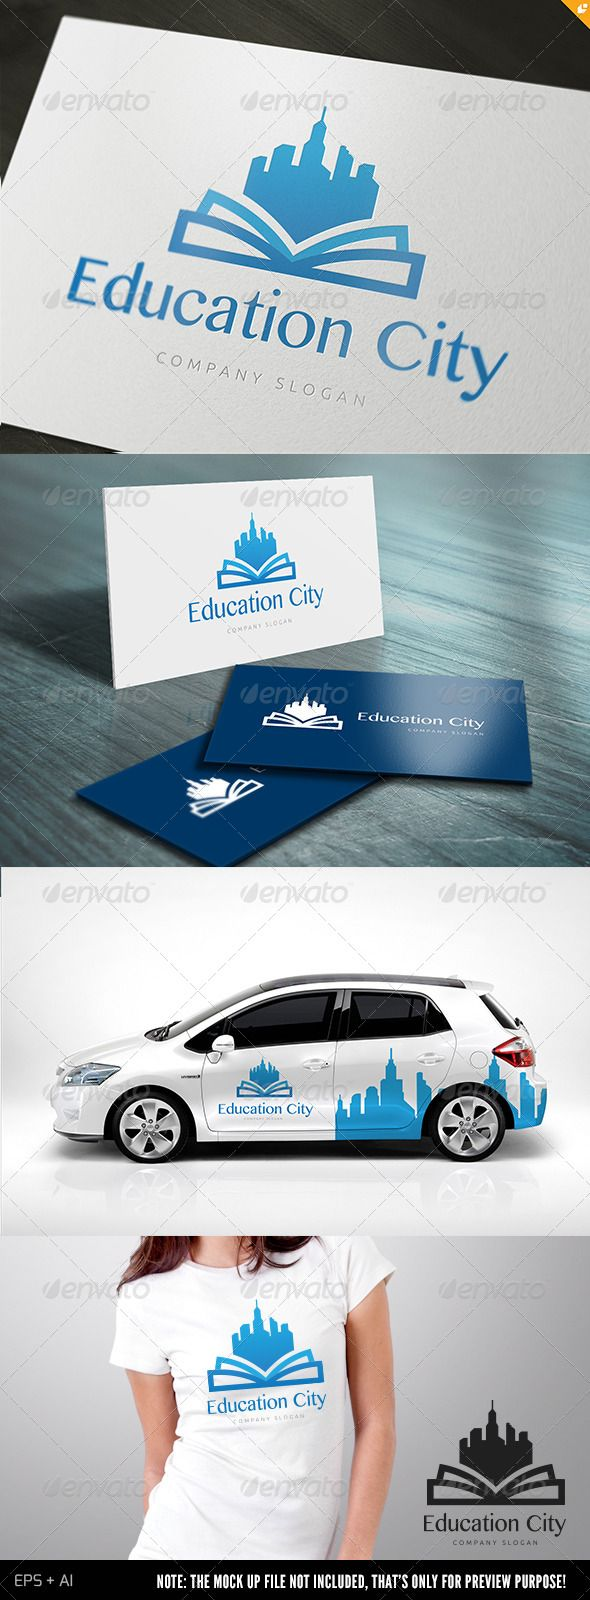 Education City Logo Design Template Vector #logotype Download it here:  http://graphicriver.net/item/education-city-/5131934?s_rank=356?ref=nexion